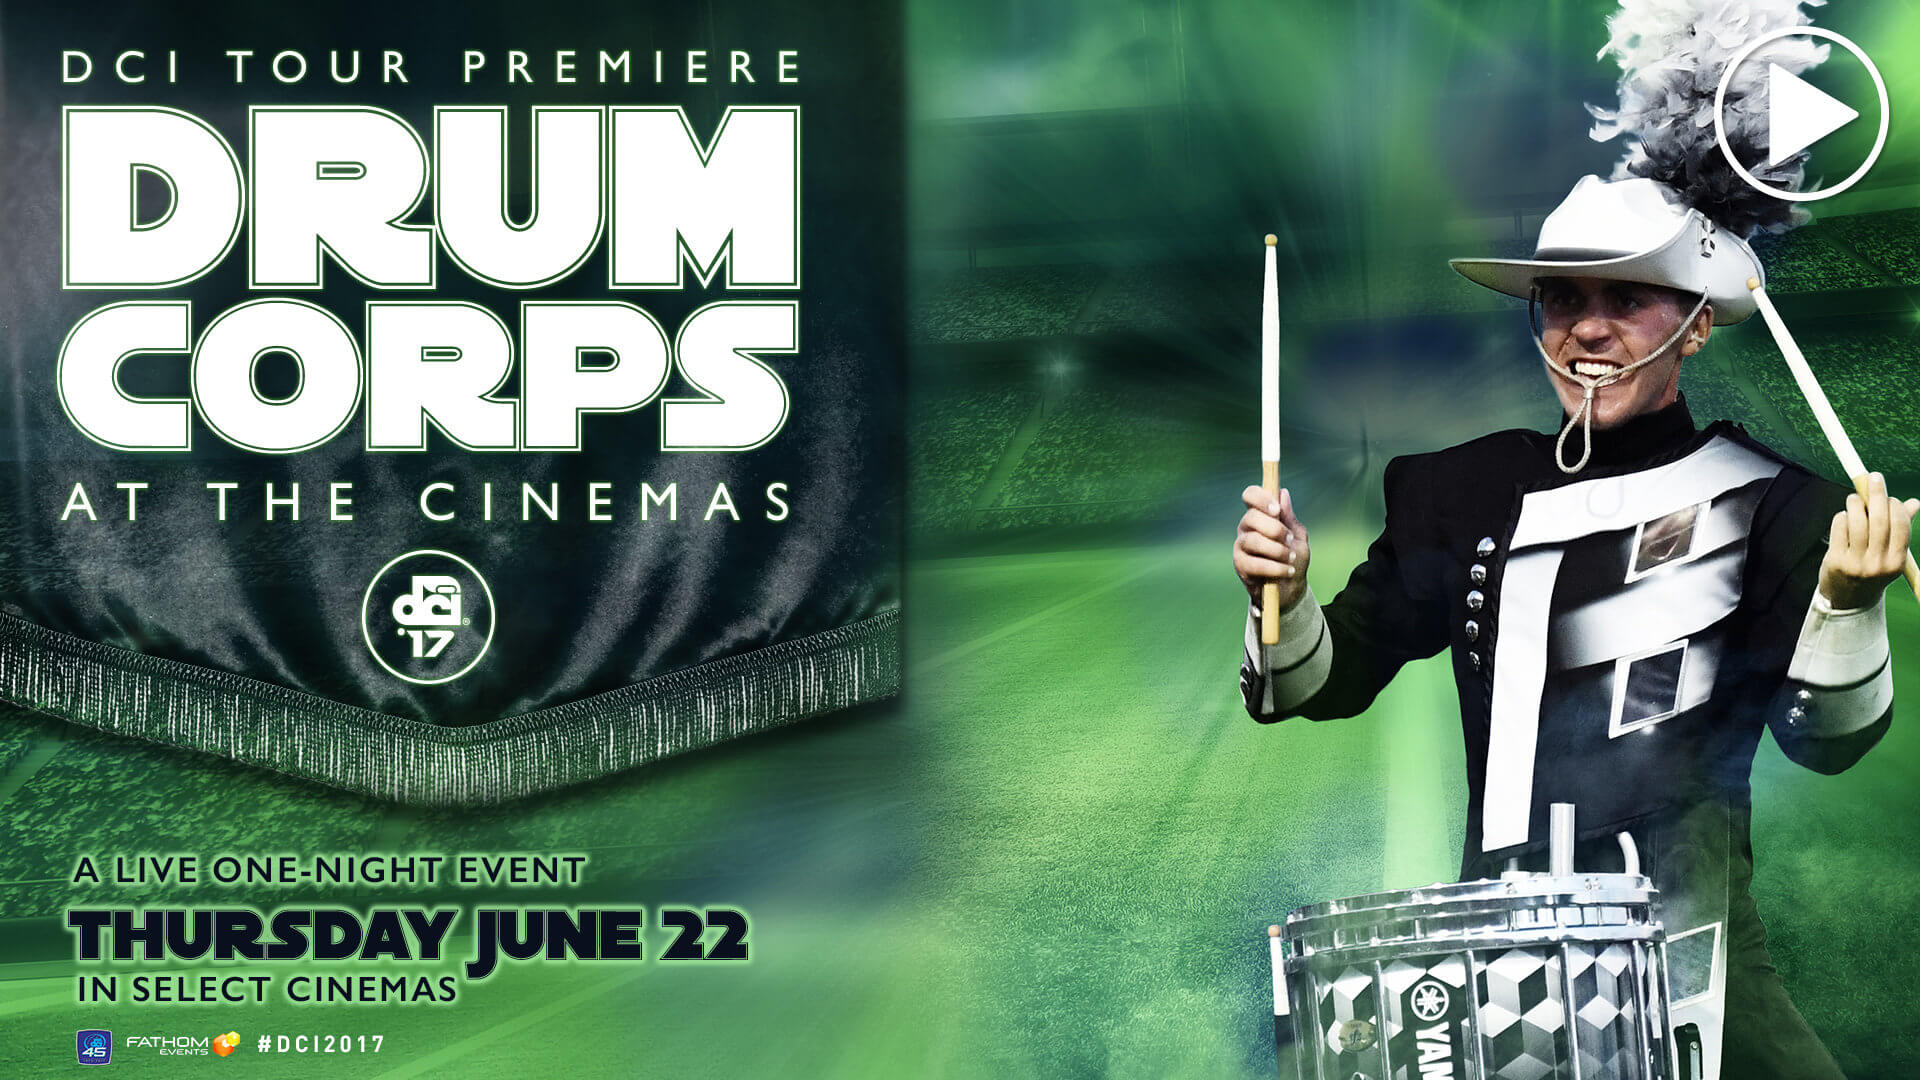 Watch the DCI Tour Premiere movie trailer